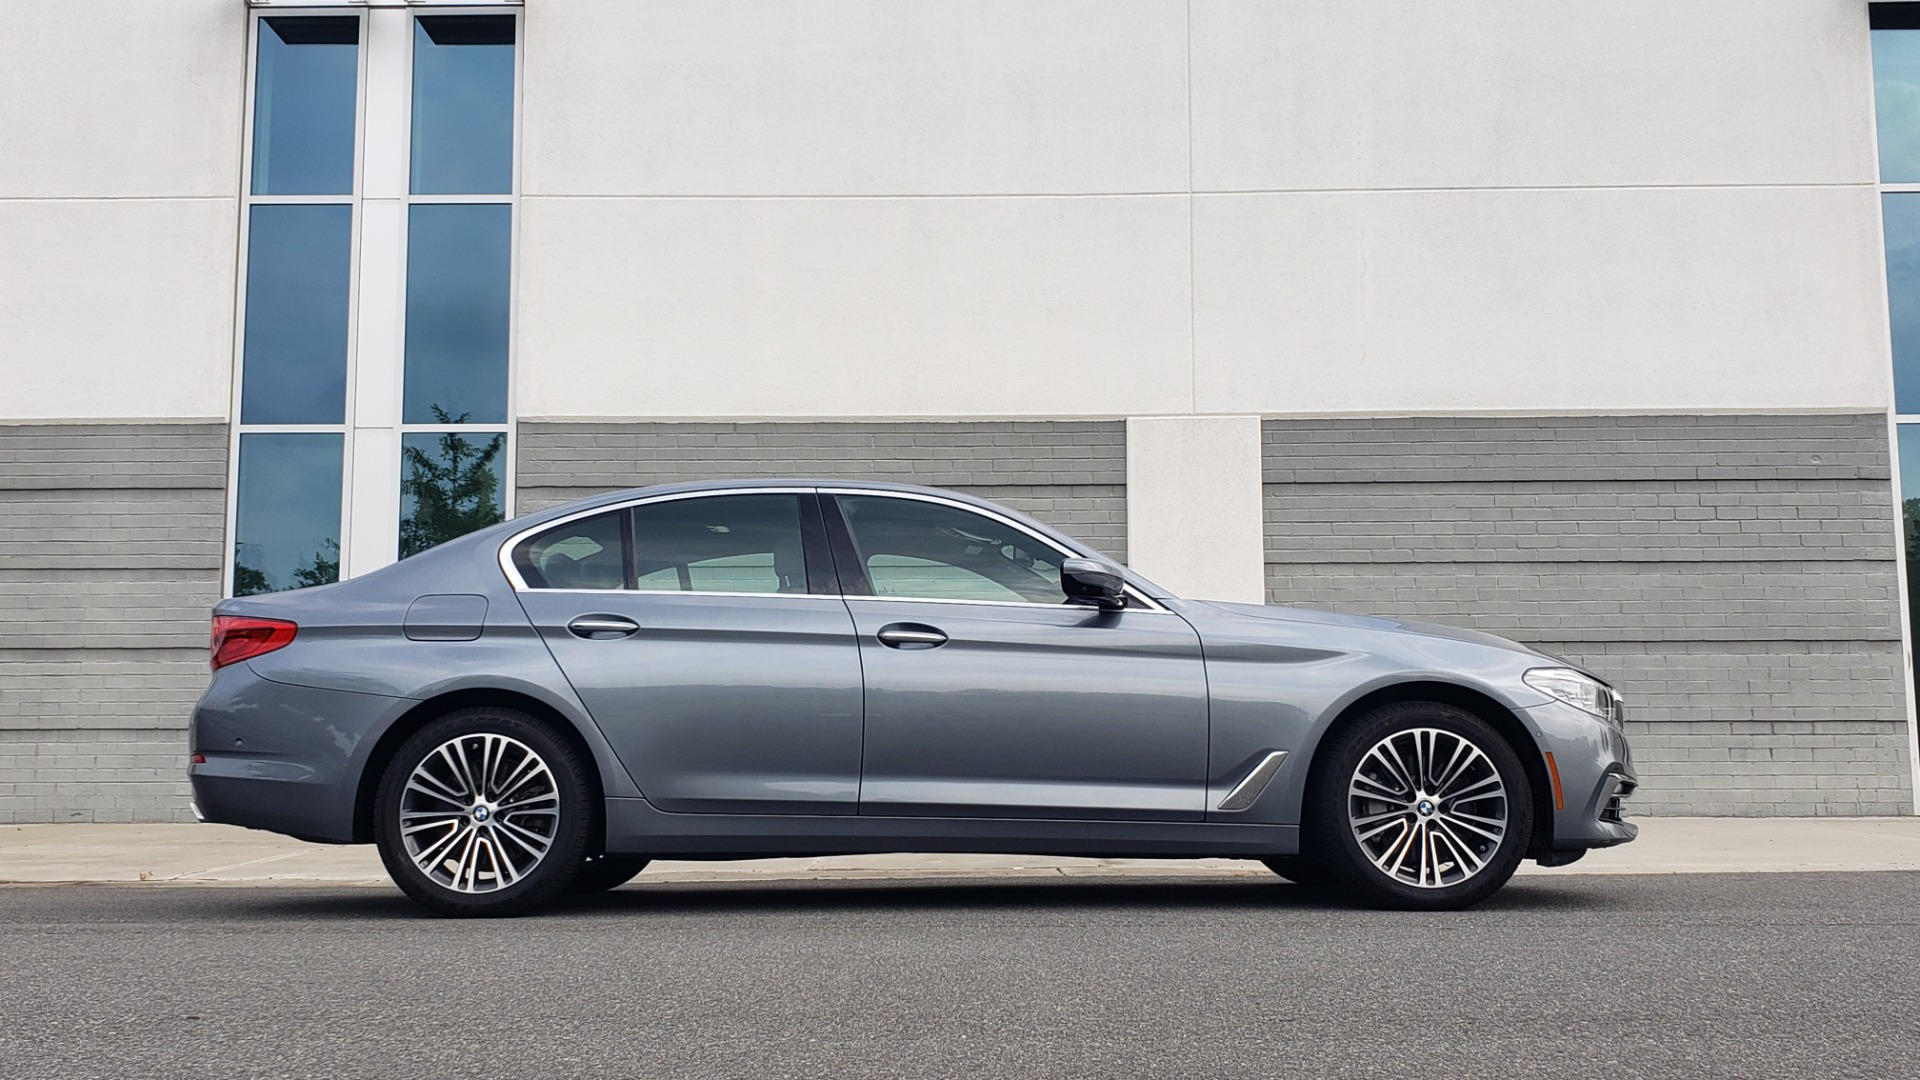 Used 2018 BMW 5 SERIES 540I XDRIVE PREMIUM / EXECUTIVE / LUXURY / H/K SND / REMOTE CONTROL PARKING for sale $40,995 at Formula Imports in Charlotte NC 28227 9